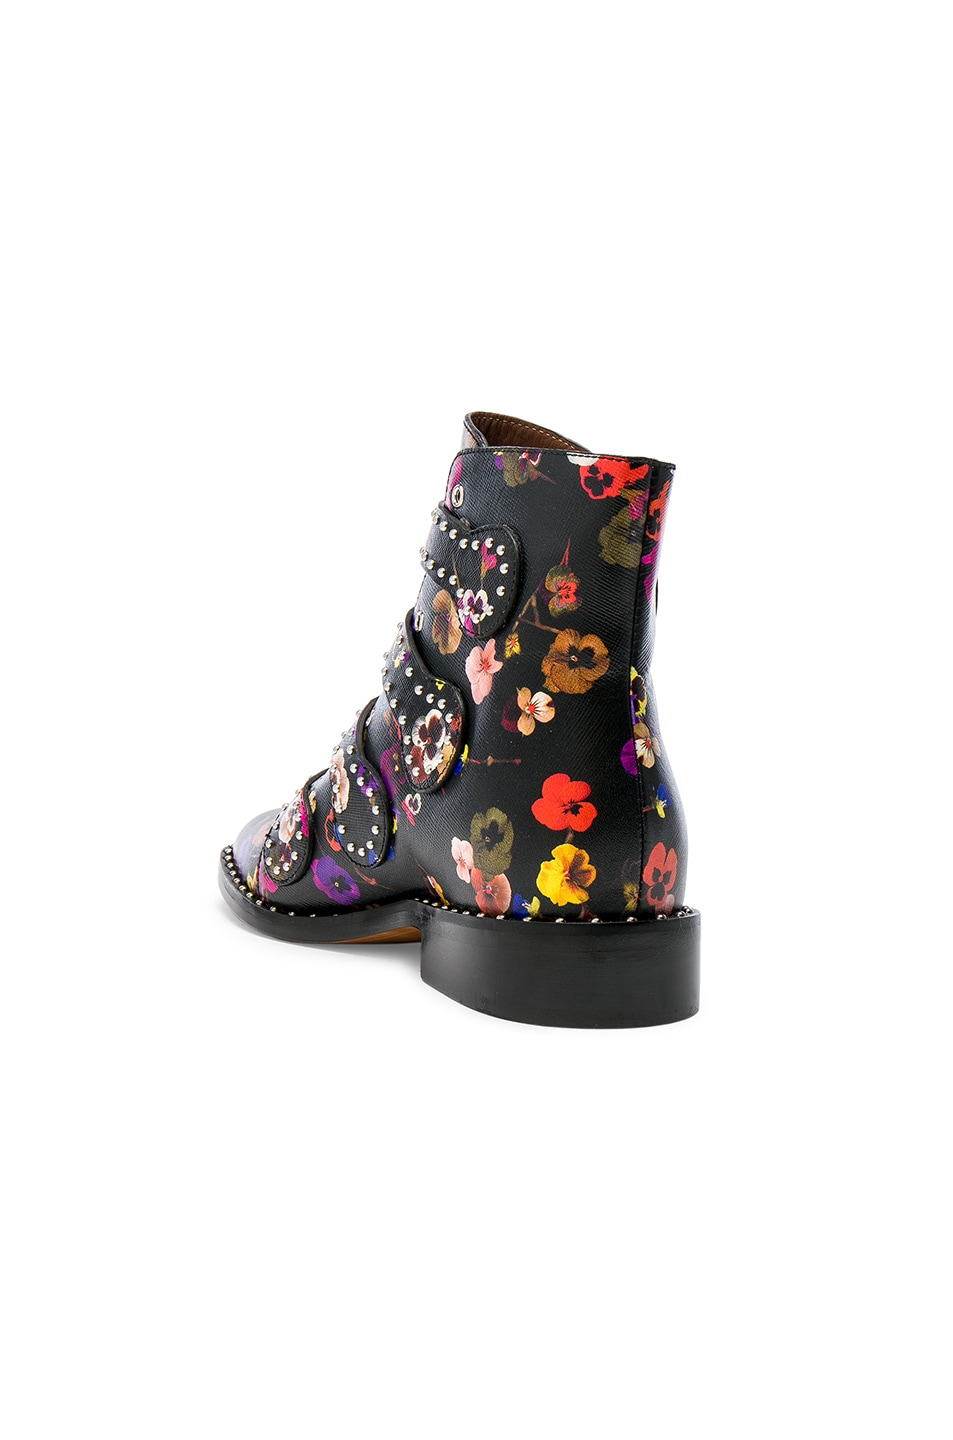 0c1428f9e60 Givenchy Night Pansies Elegant Studded Leather Ankle Boots in Multi ...